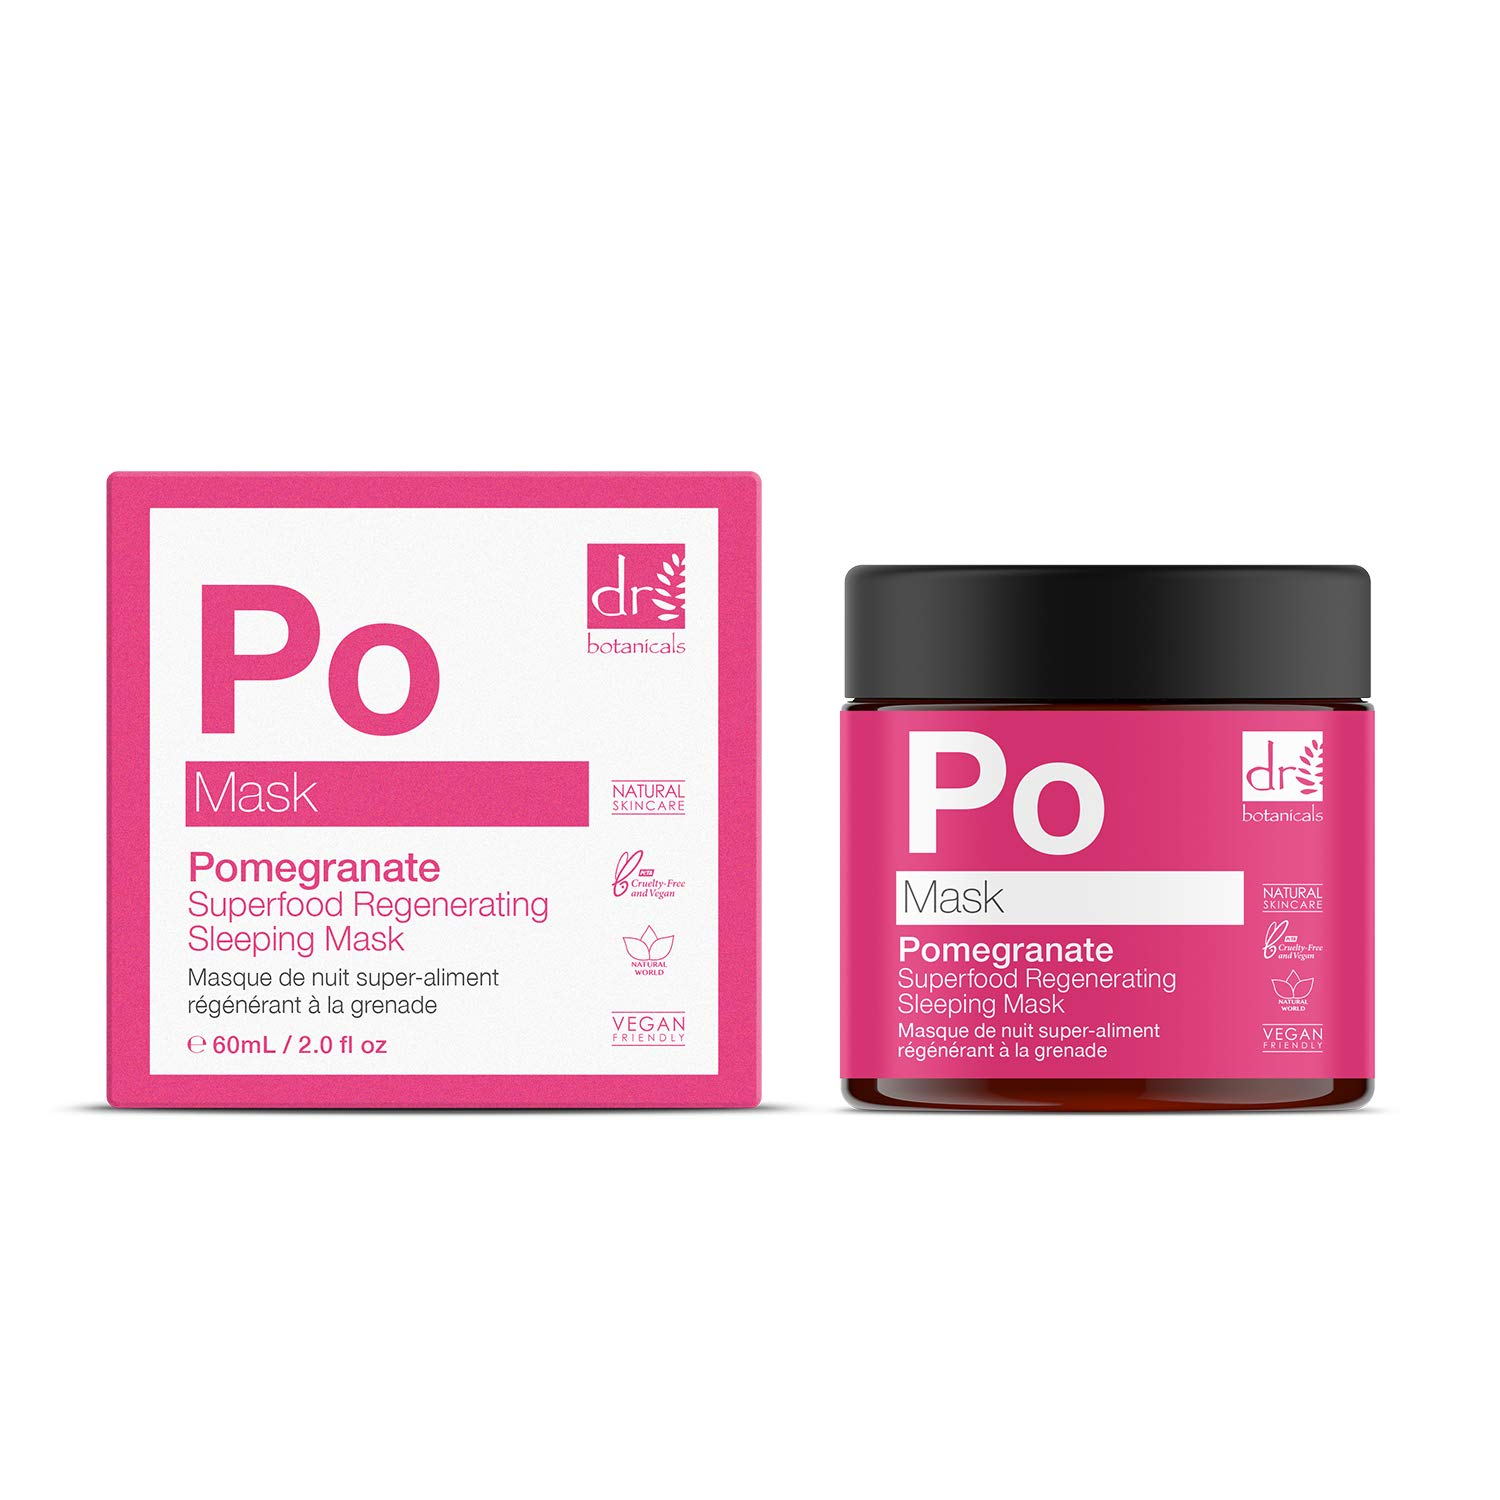 Dr Botanicals Natural Skincare Pomegranate Superfood Regenerating & Hydrating Sleeping Facial Mask to hydrate, nourish and revive your skin 60ml/2.02 Fl Oz